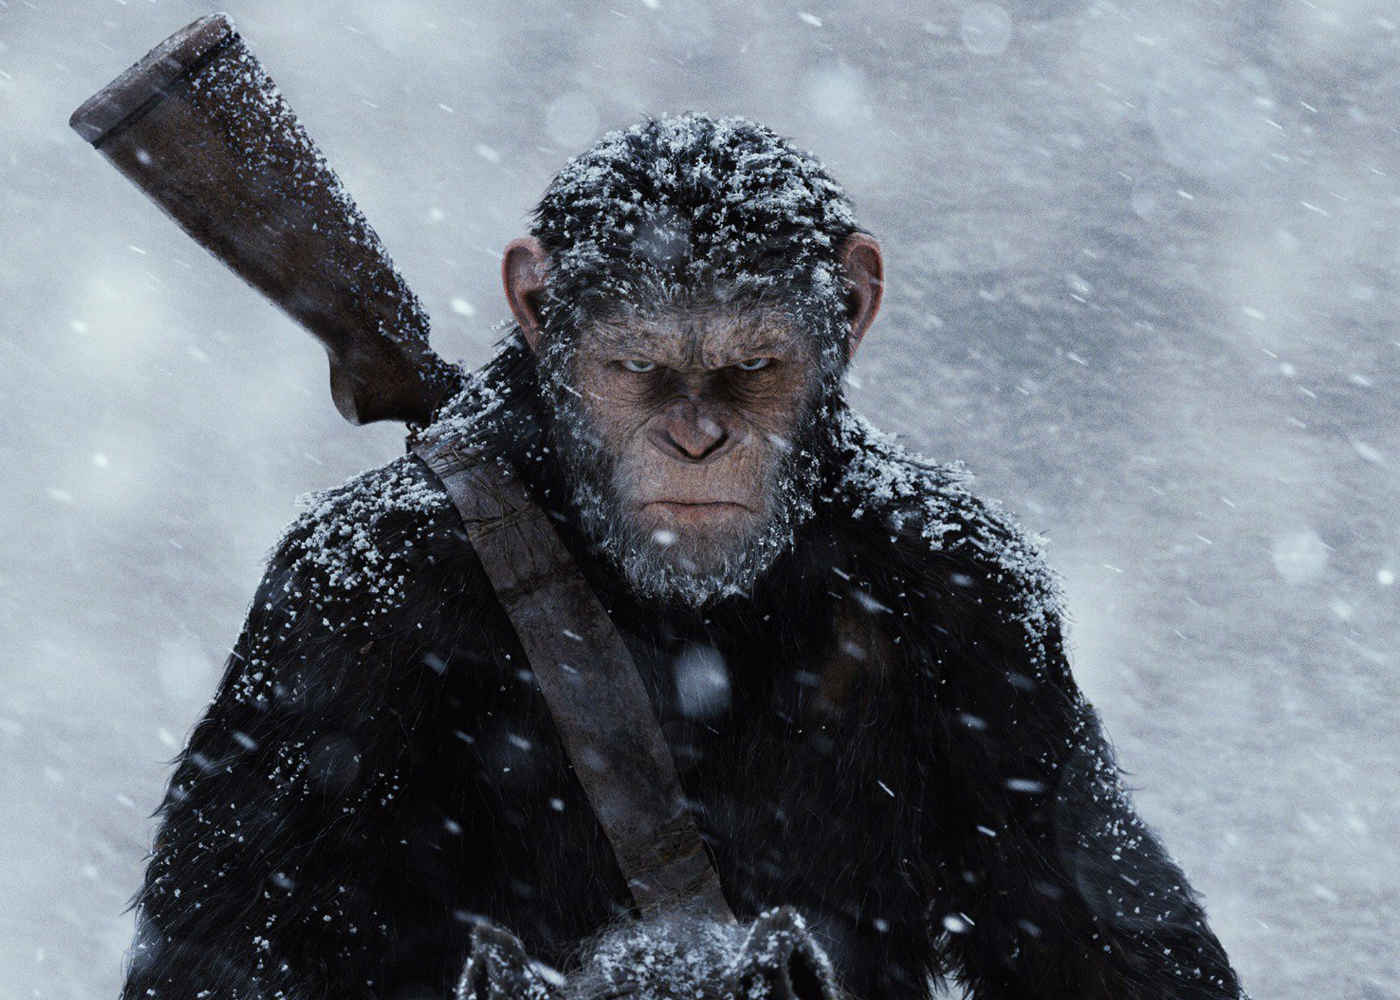 War for the Planet of the Apes Certified FRESH